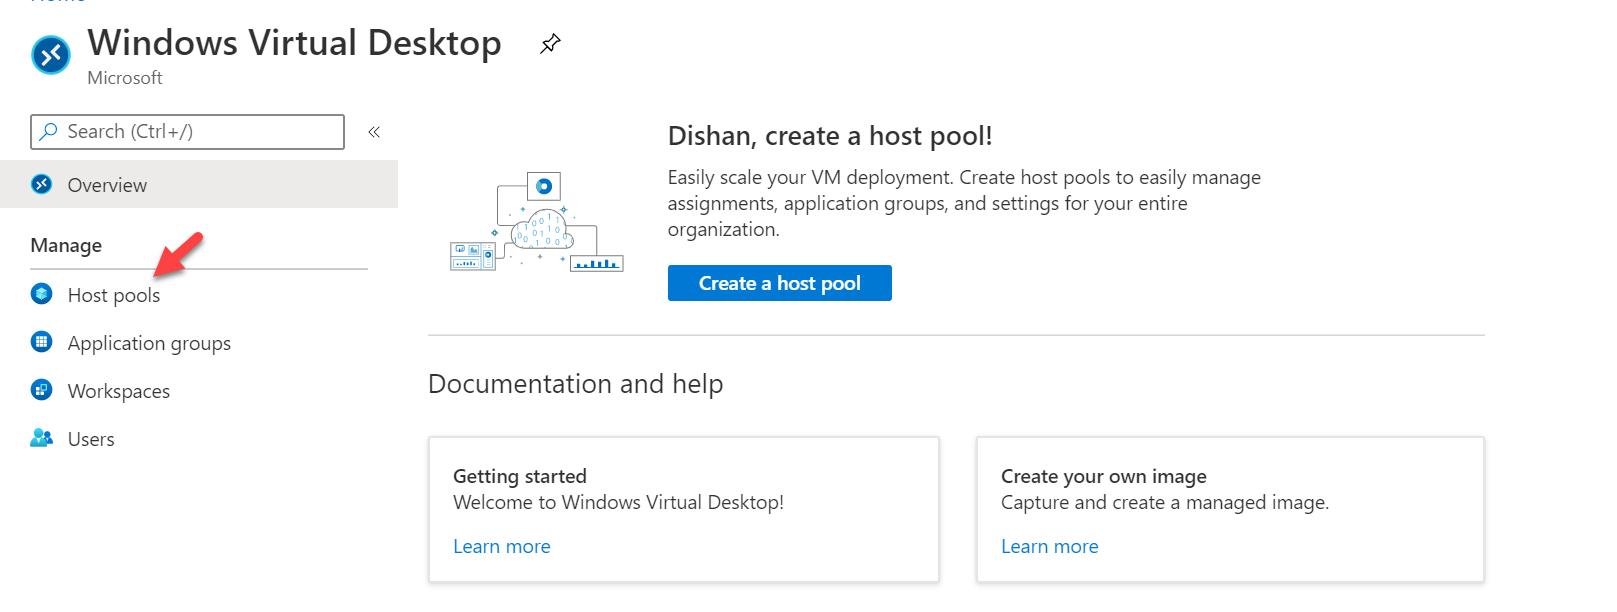 Windows Virtual Desktop host pools